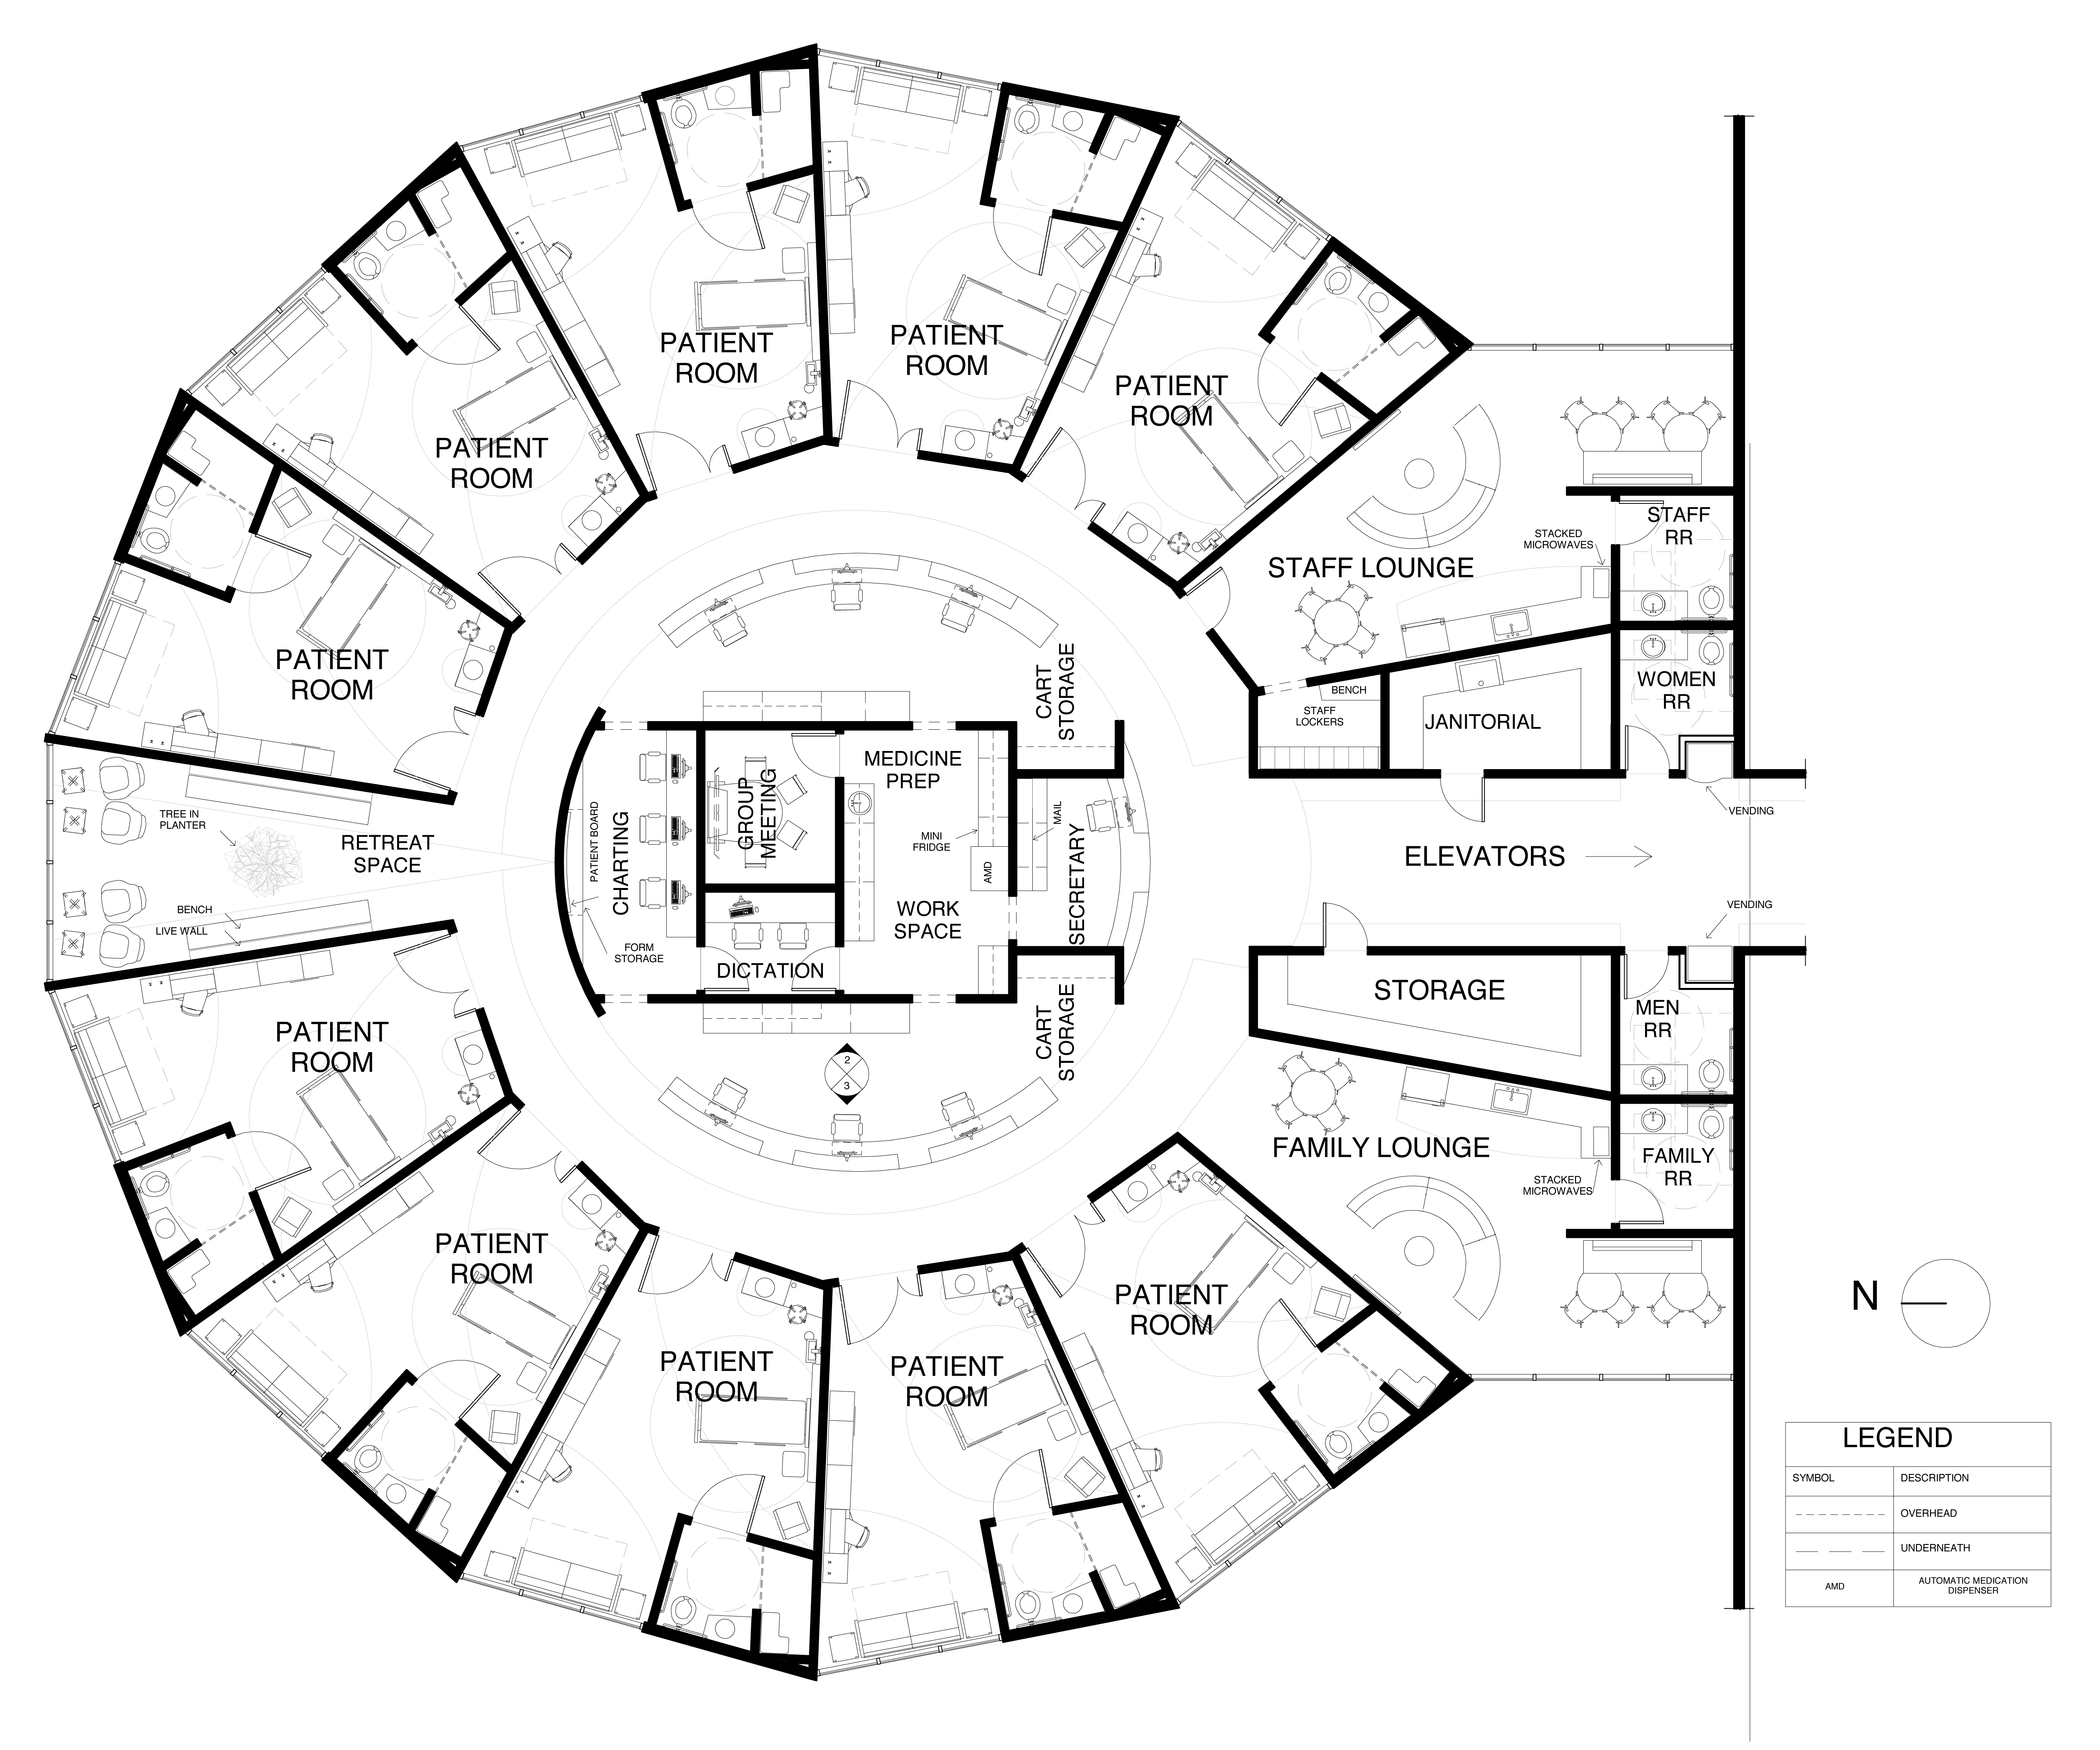 Nurse Station Floor Plan